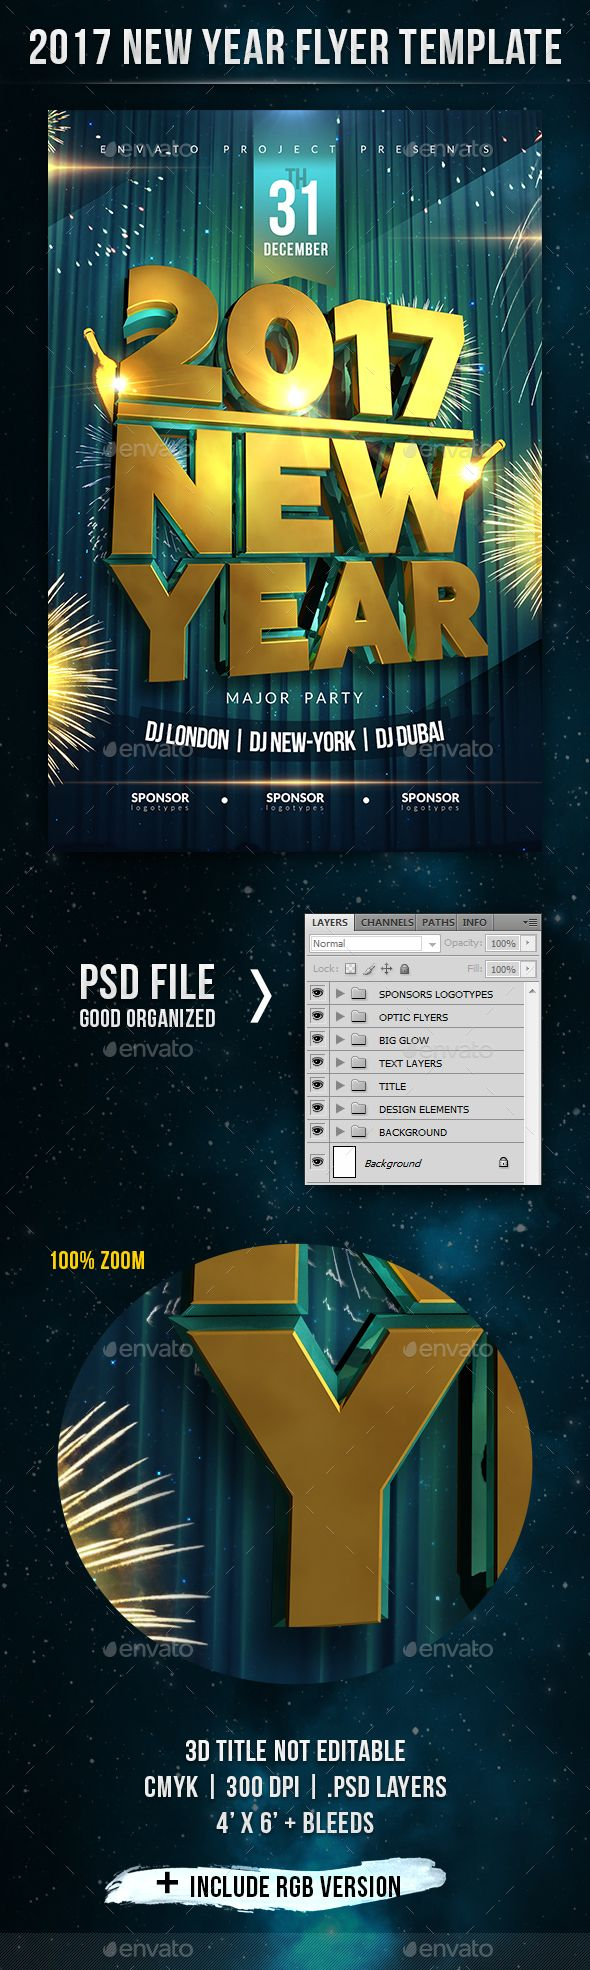 2017 New Year Flyer – New Year Poster Template